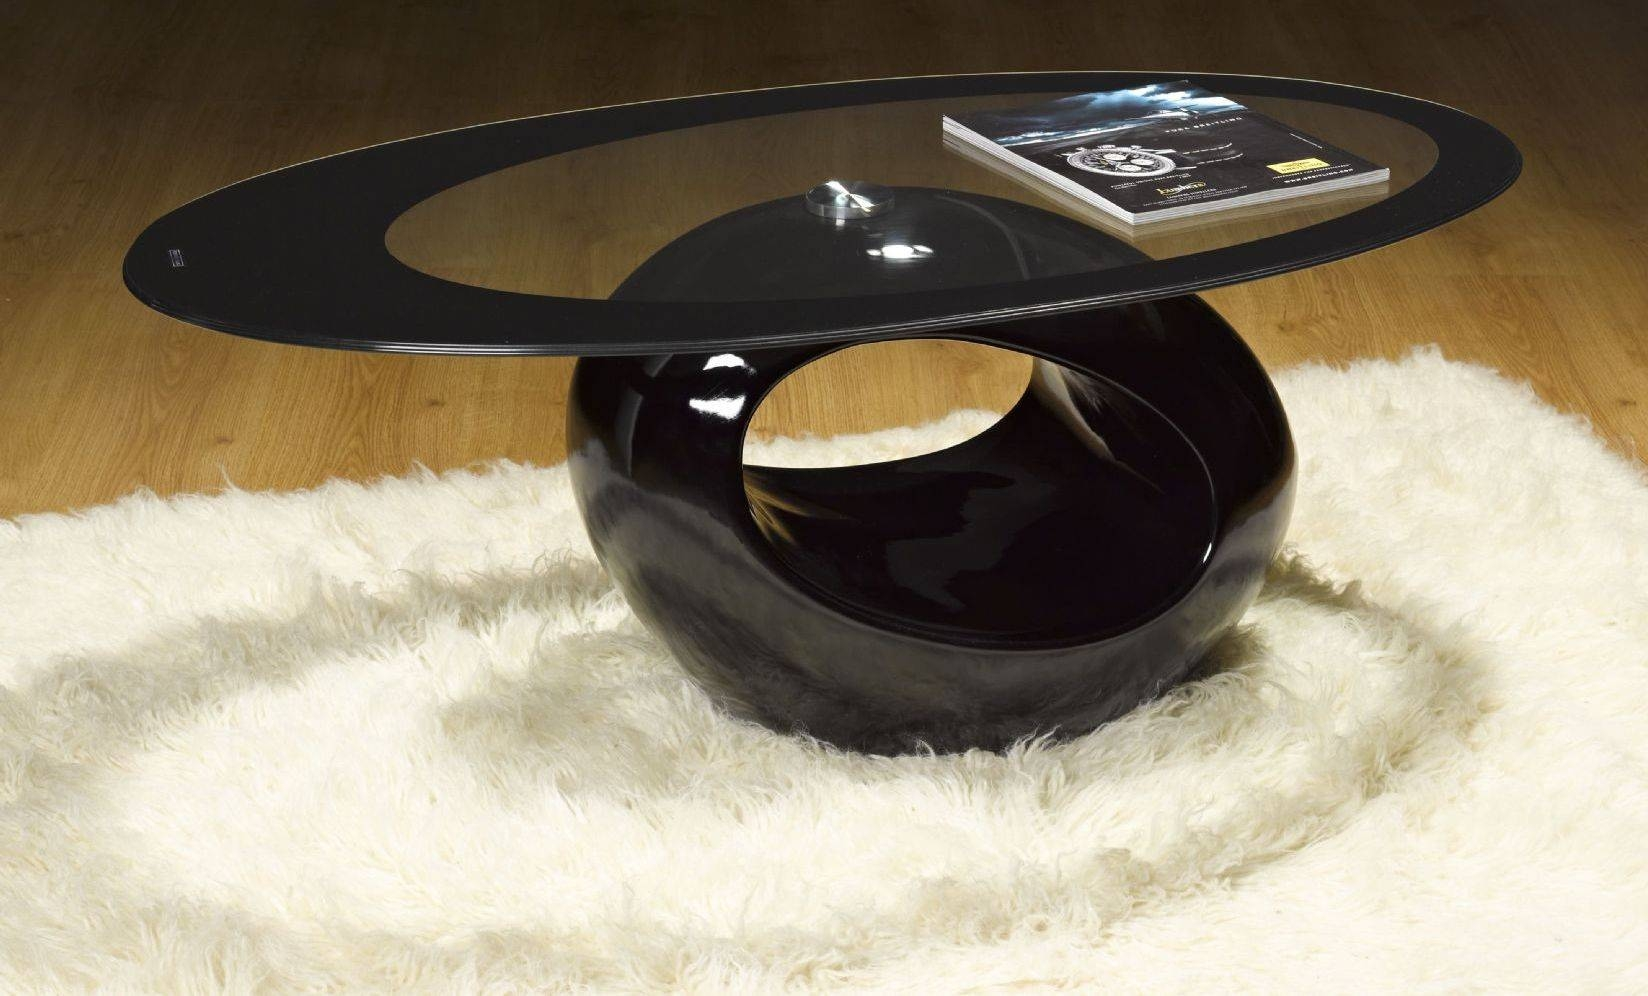 Decor Your Living Room In Style With Oval Coffee Table | Home inside Black Oval Coffee Table (Image 15 of 30)